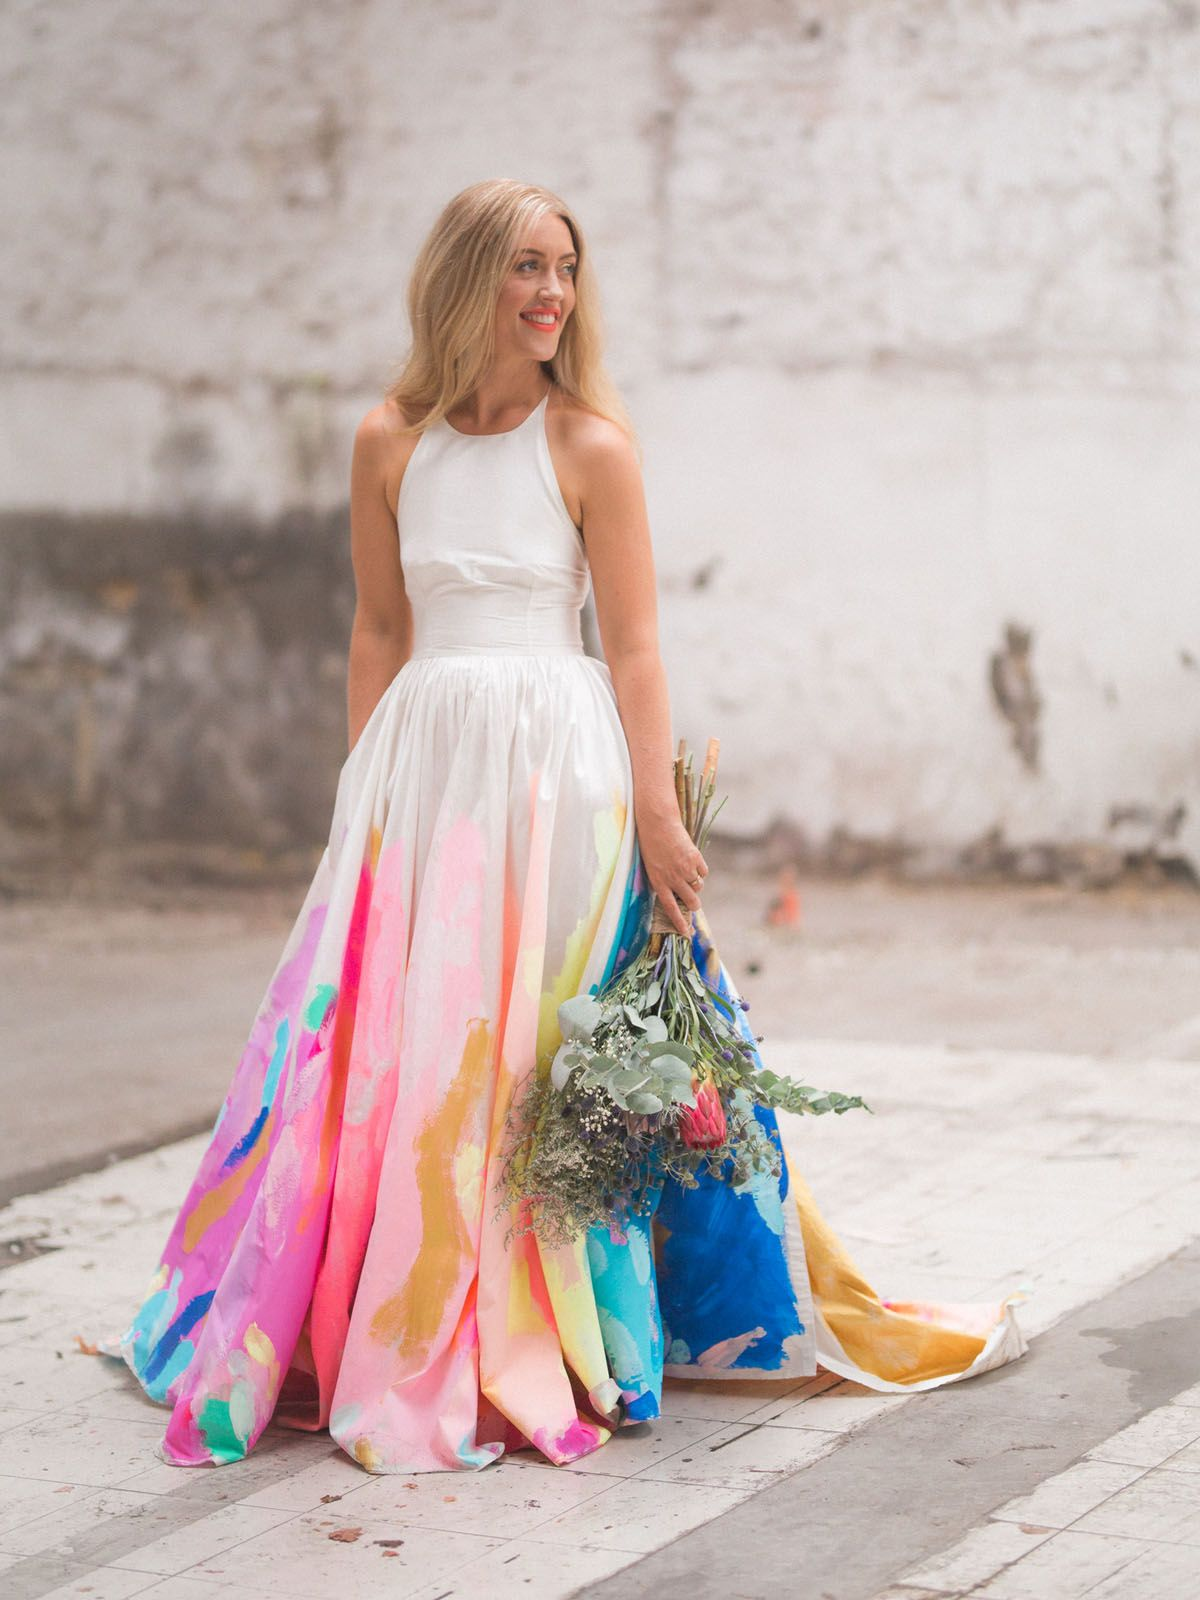 Wedding Dresses With Color.The Bride Wore A Hand Painted Rainbow Wedding Dress